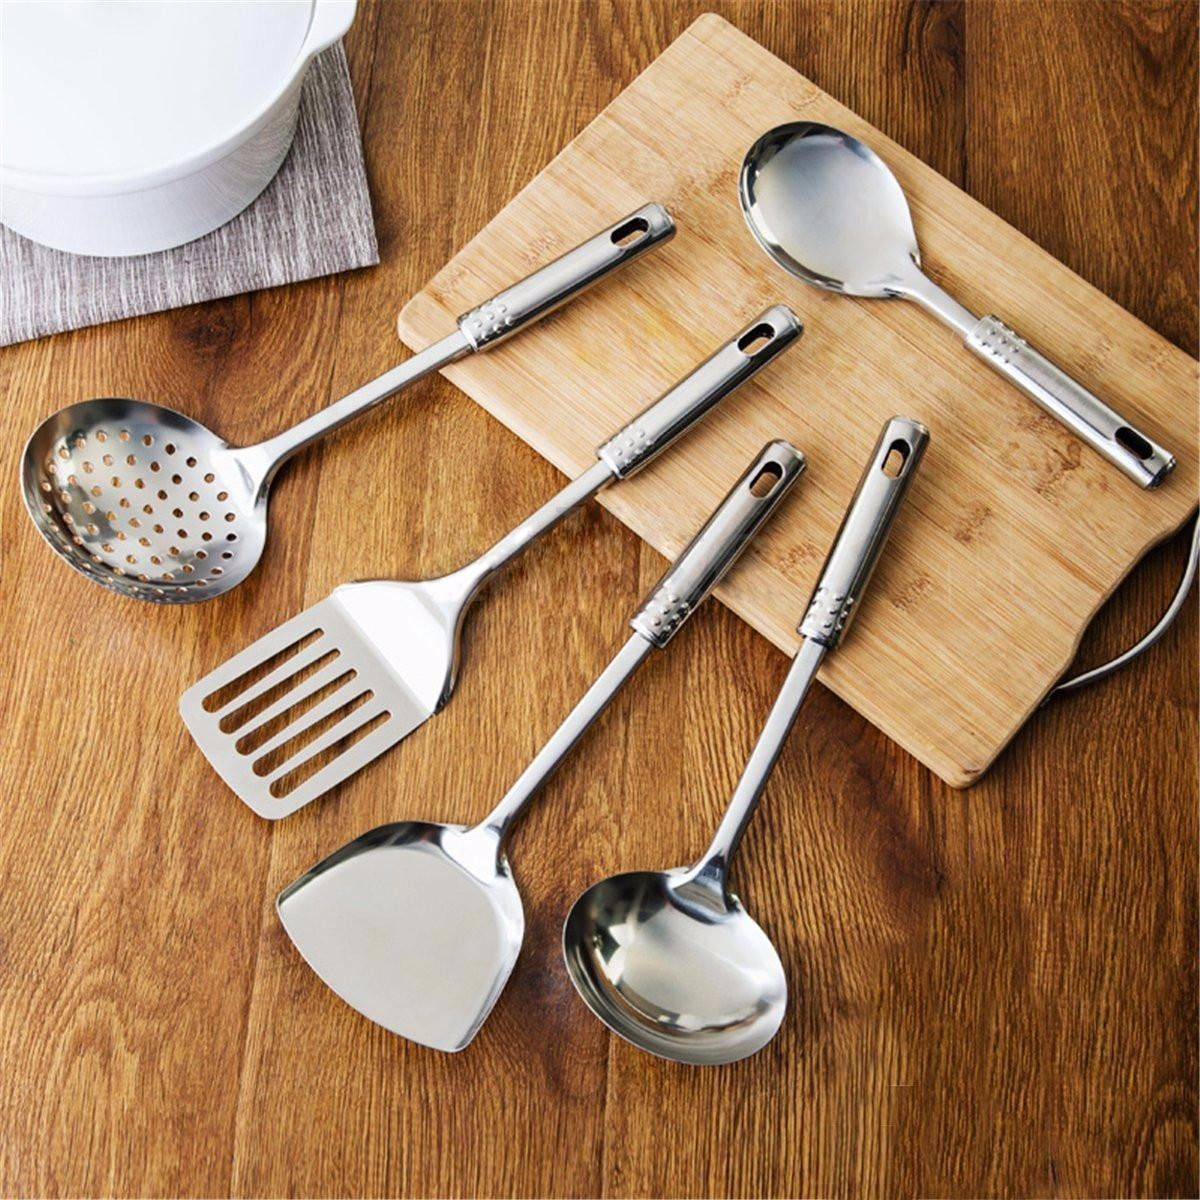 Restaurant Kitchen Toolste compare prices on restaurant kitchen set- online shopping/buy low